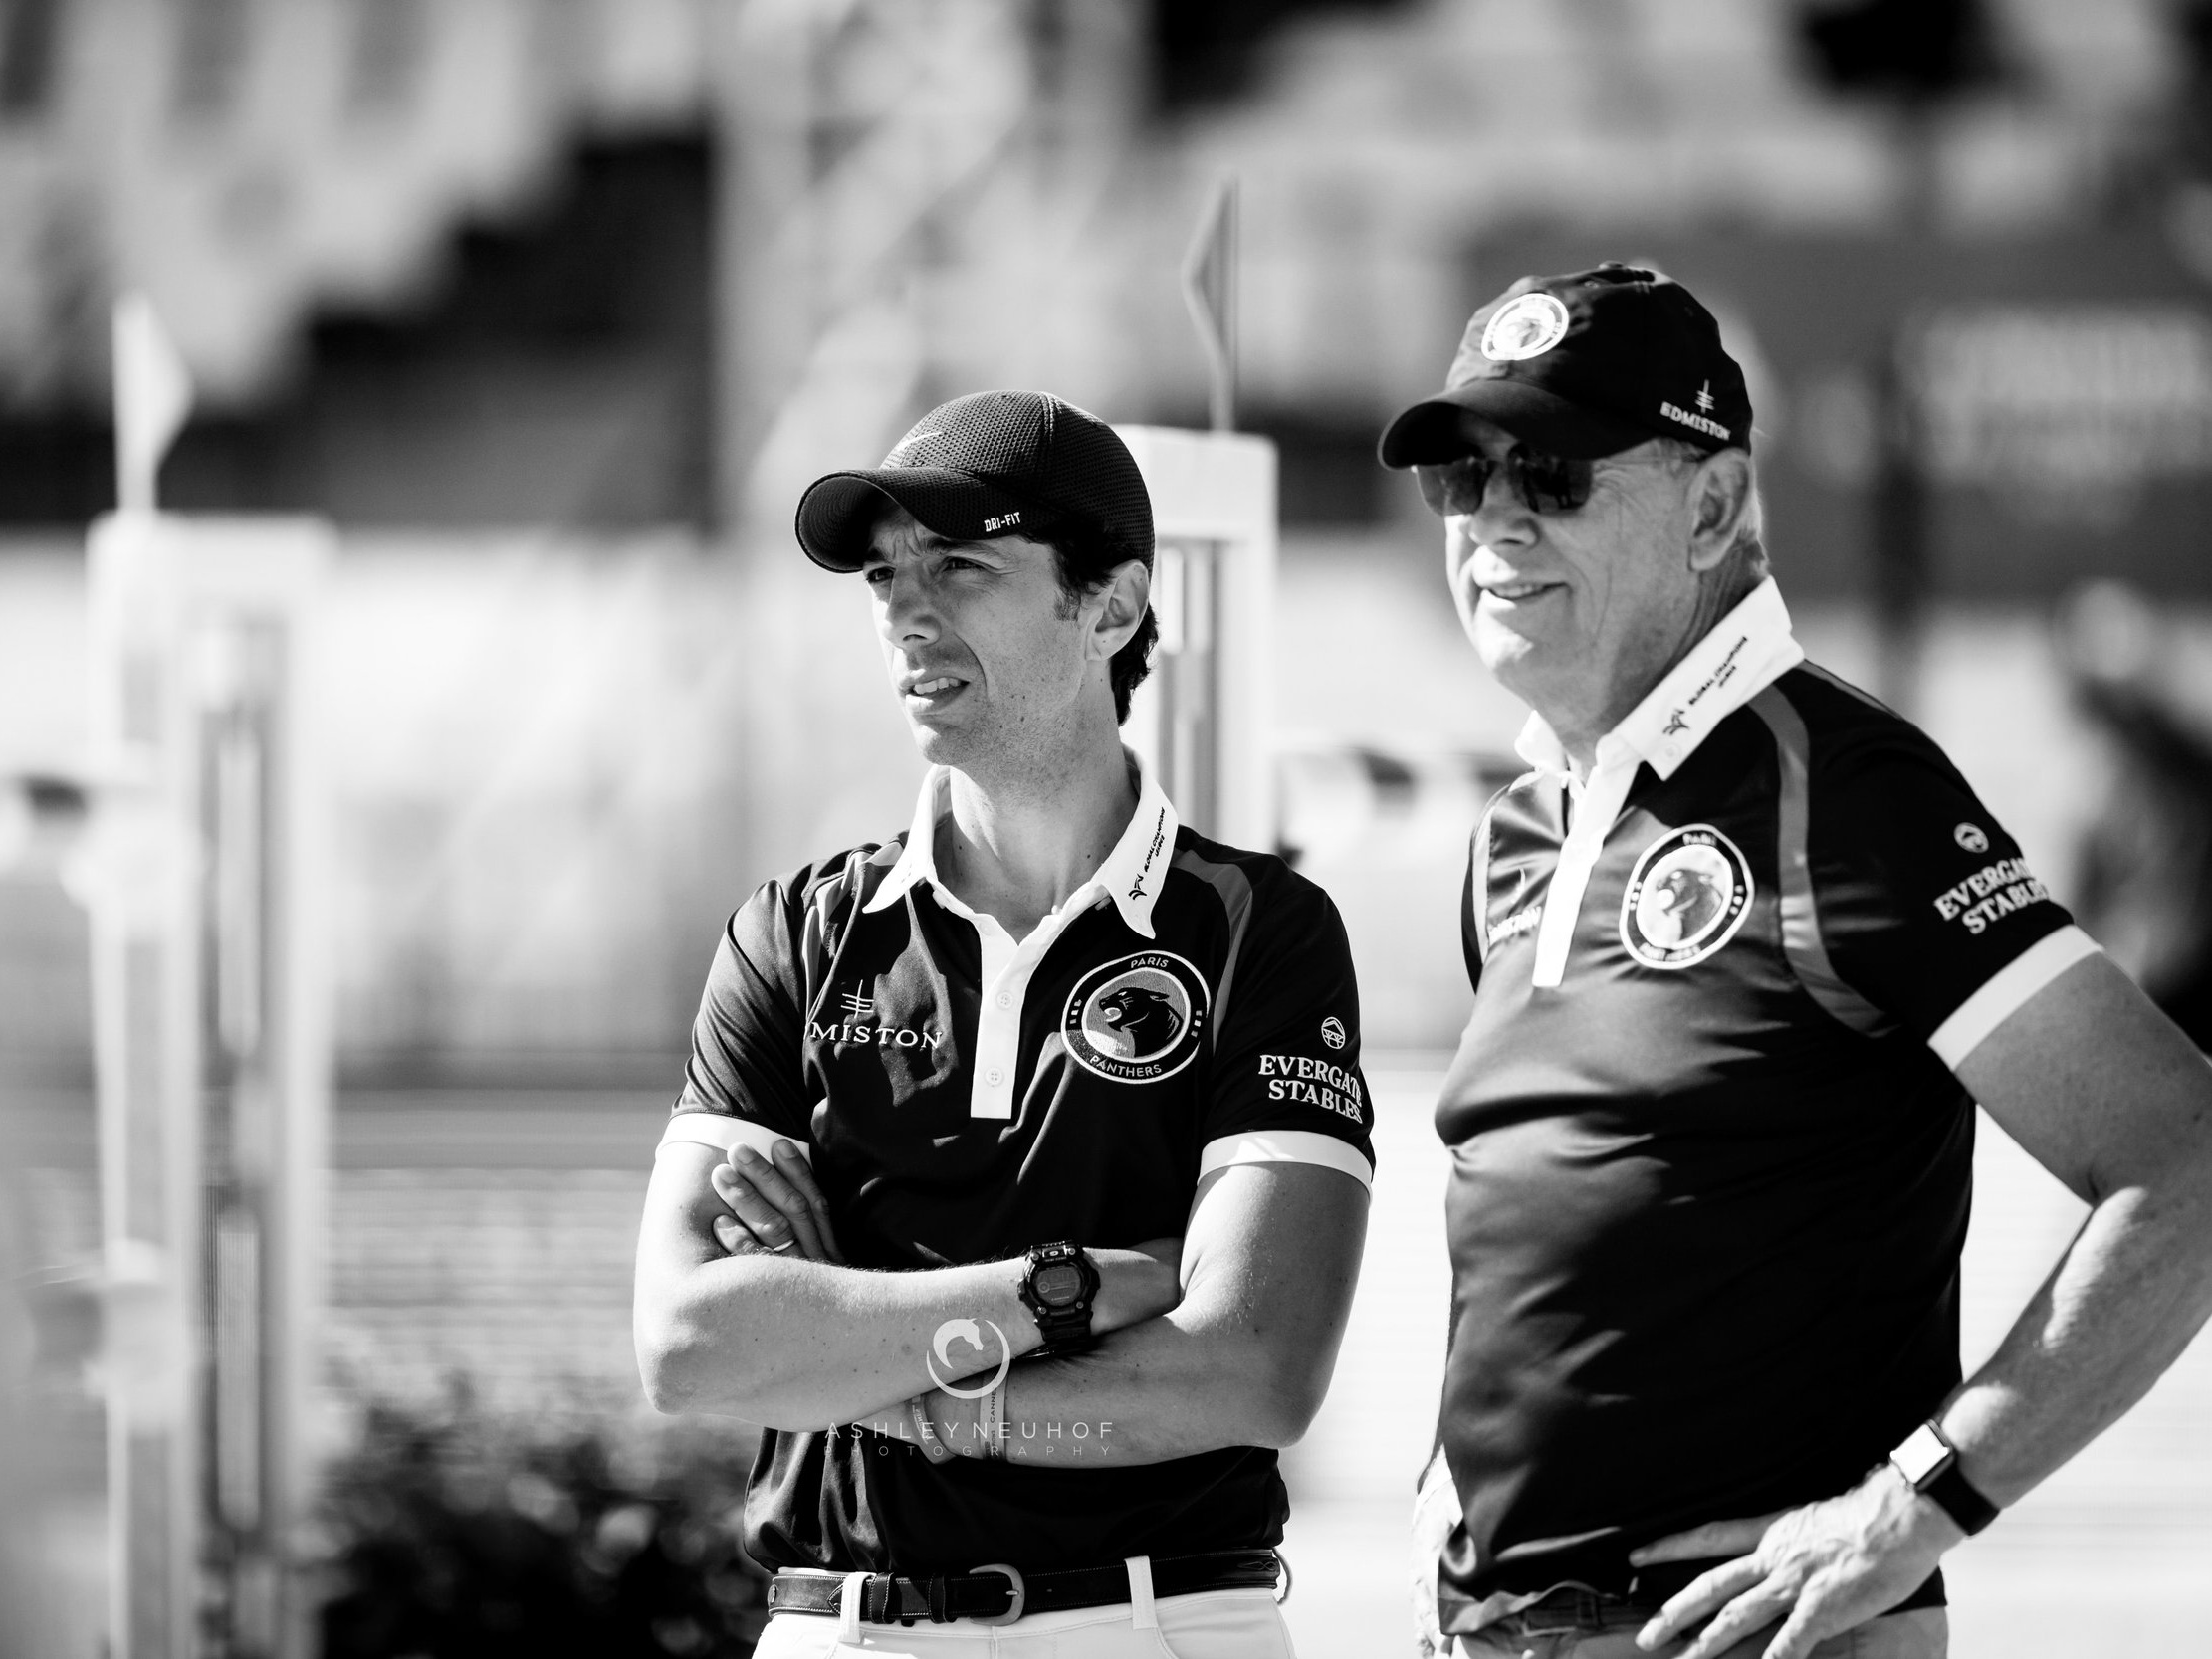 Yuri Mansur and Rob Hoekstra at Global Champions League of Cannes 2019. Photo by Ashley Neuhof Photography.